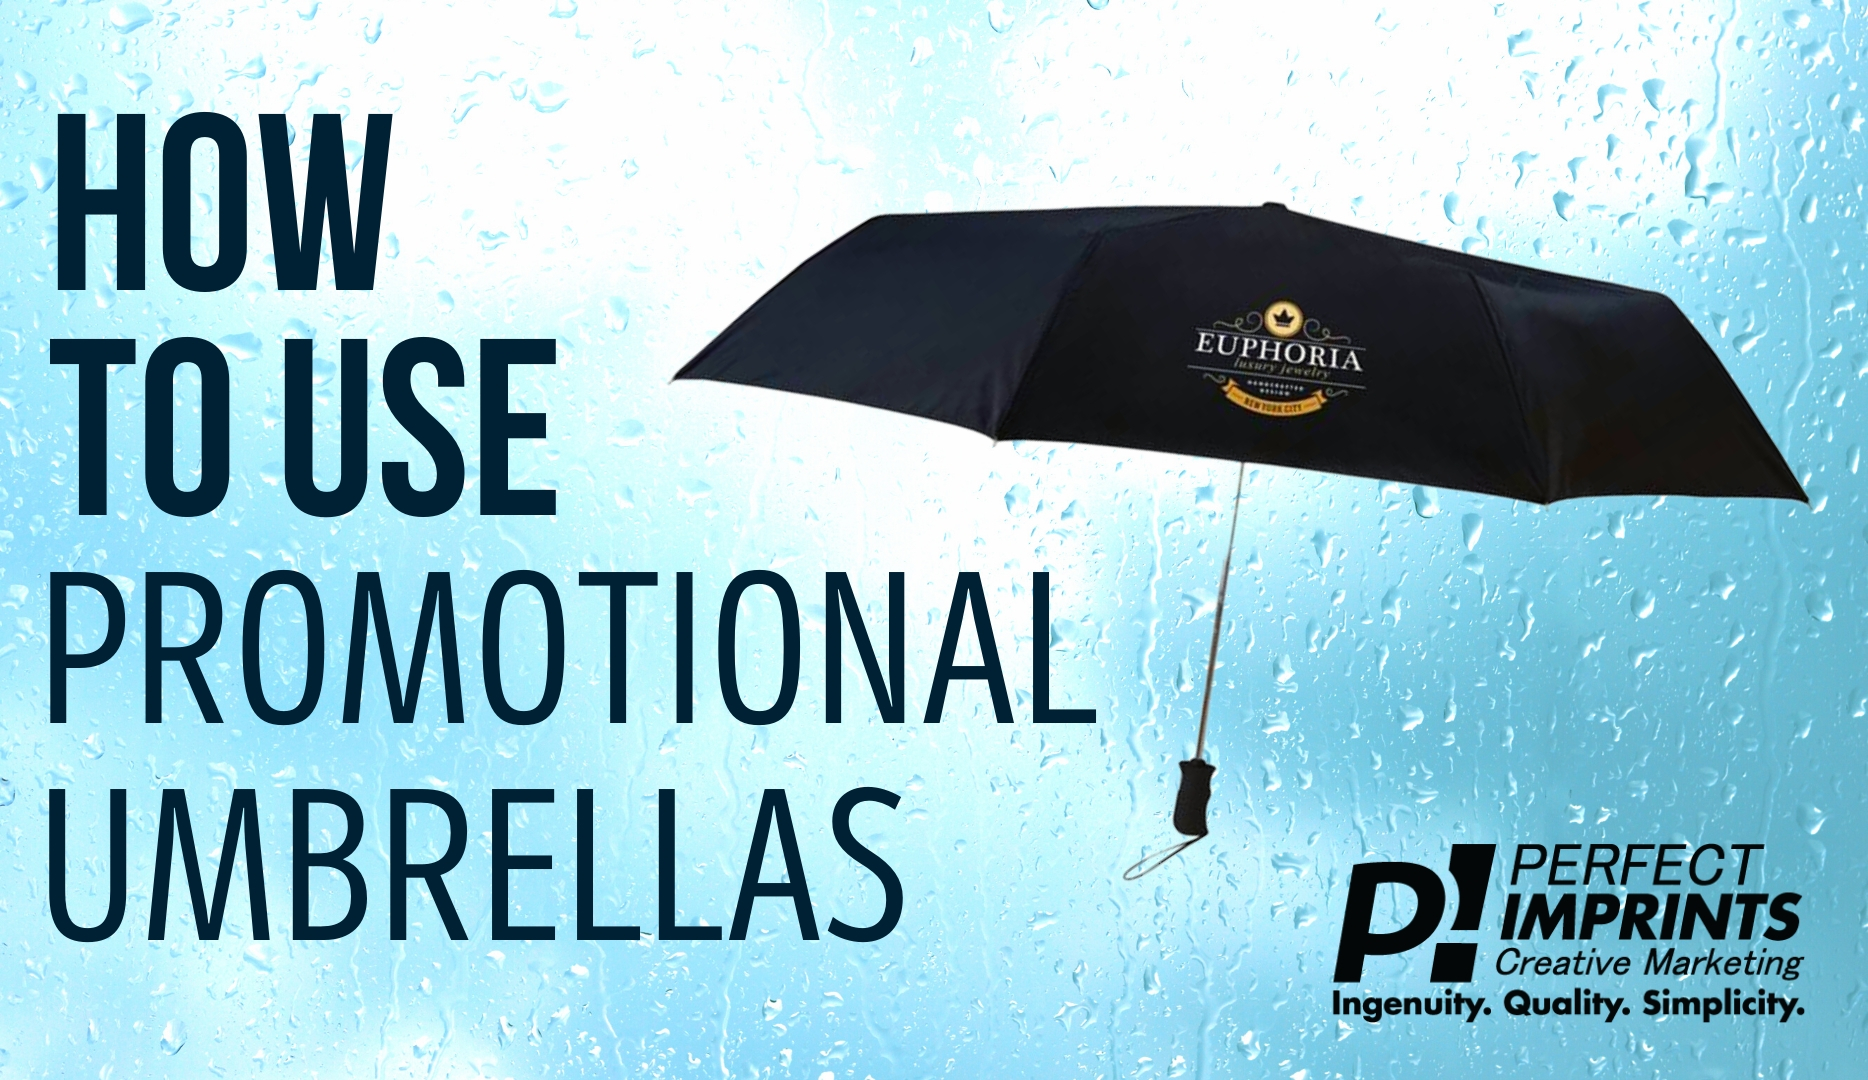 How To Use Promotional Umbrellas